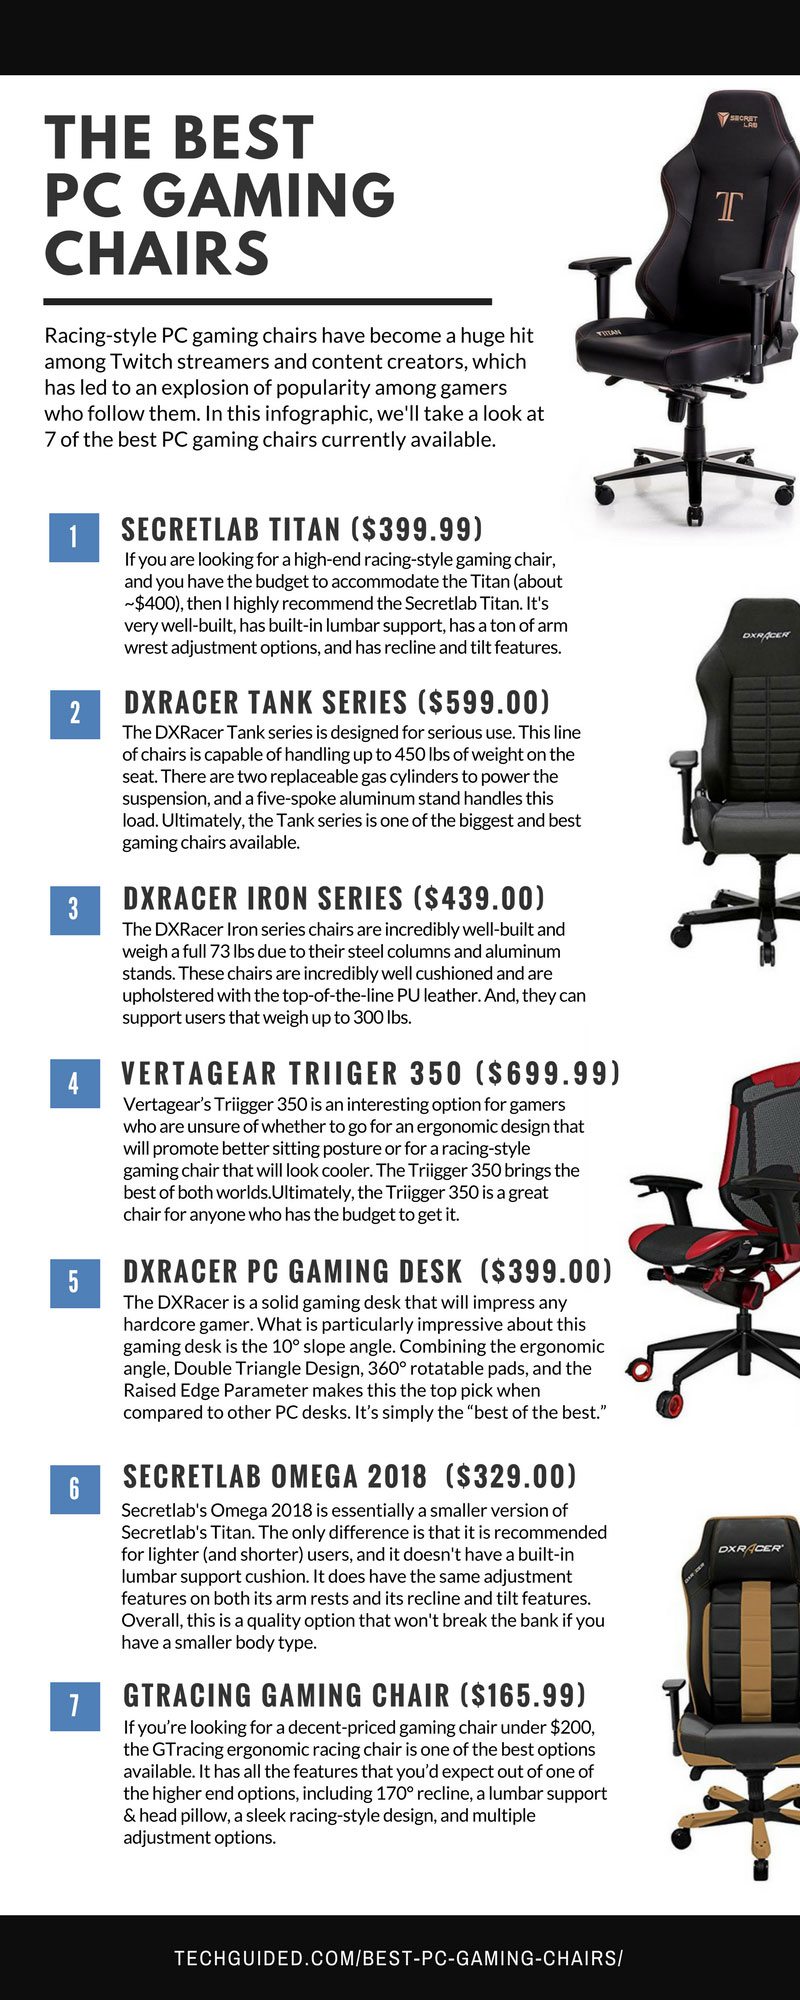 Dxracer Pc Gaming Chair The Best Pc Gaming Chairs Infographicbee